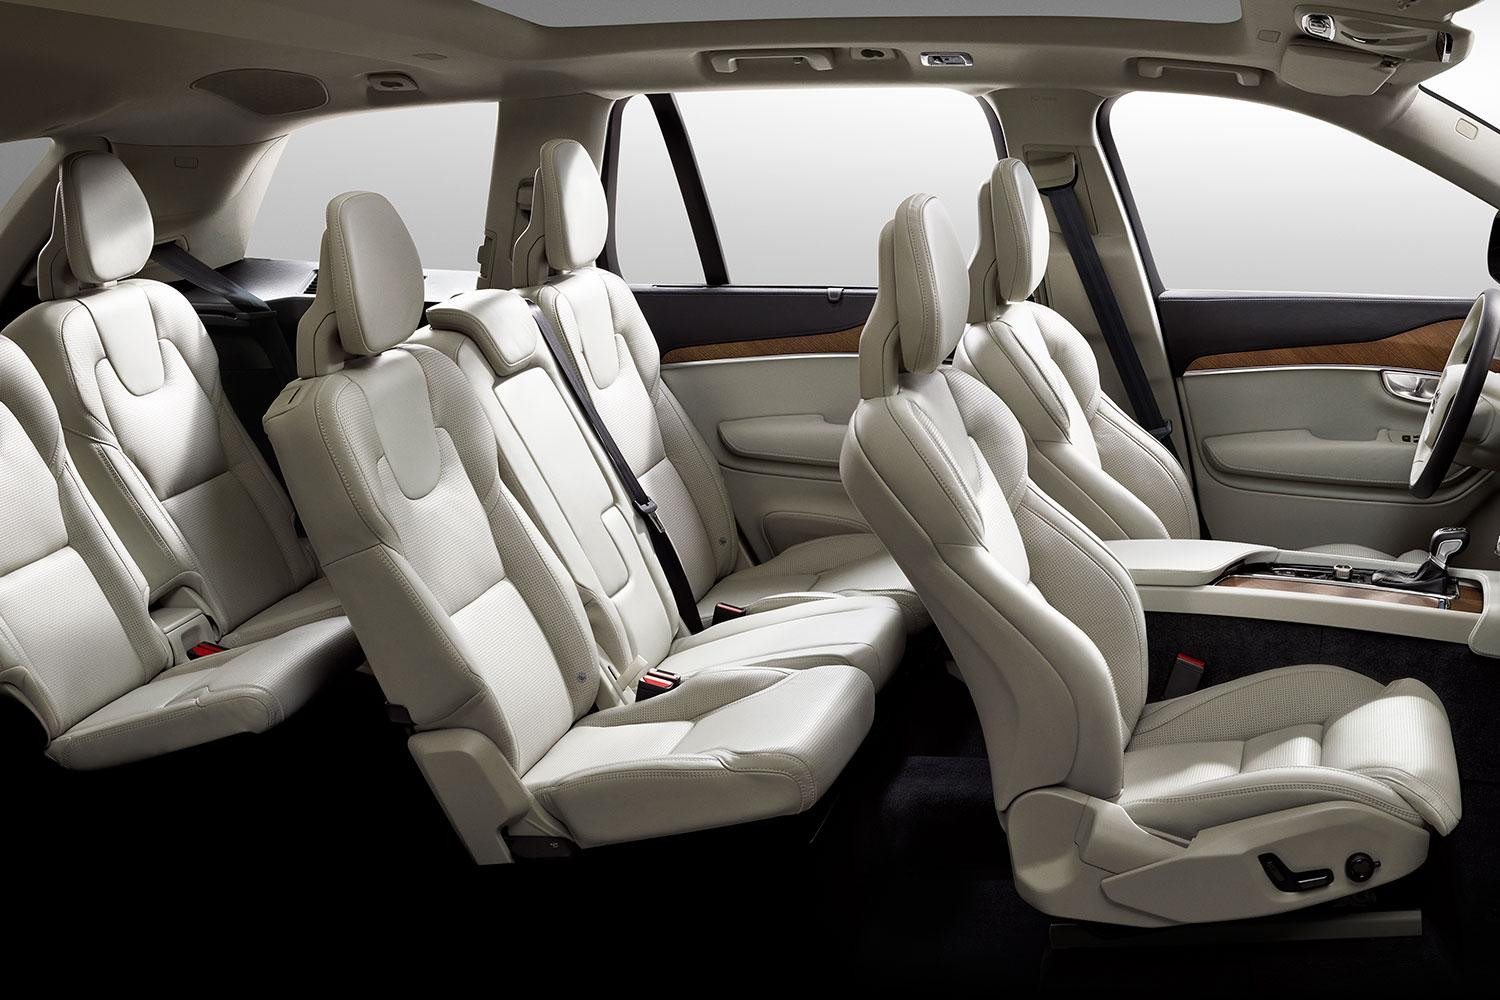 amazing-design-of-the-white-seats-of-the-volvo-v90-2016-interior-with-black-floor-ideas